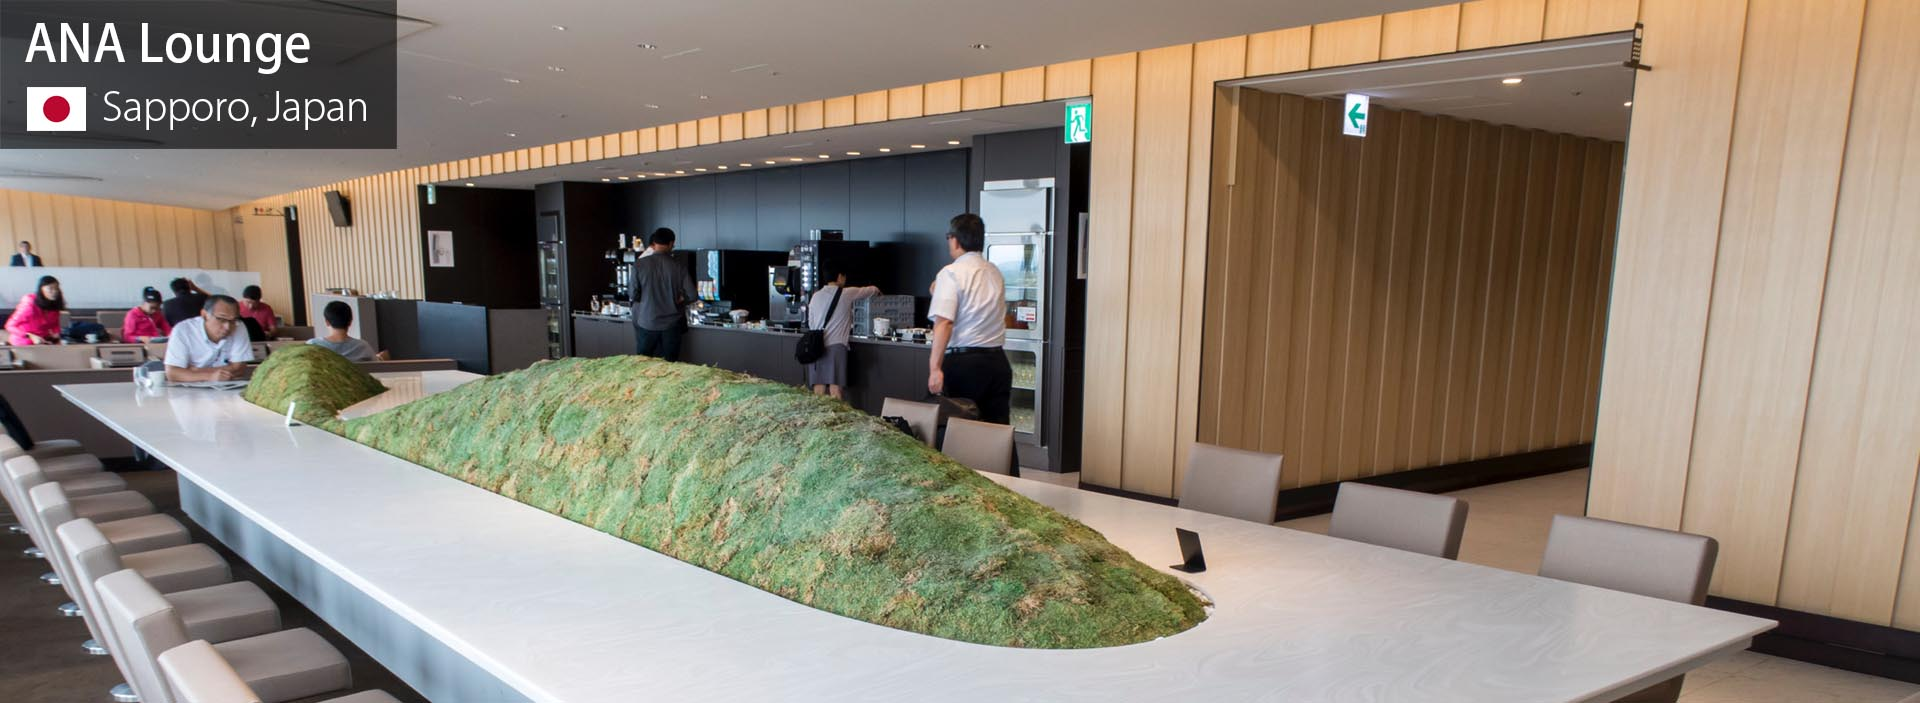 Lounge Review: ANA Lounge at Sapporo New Chitose